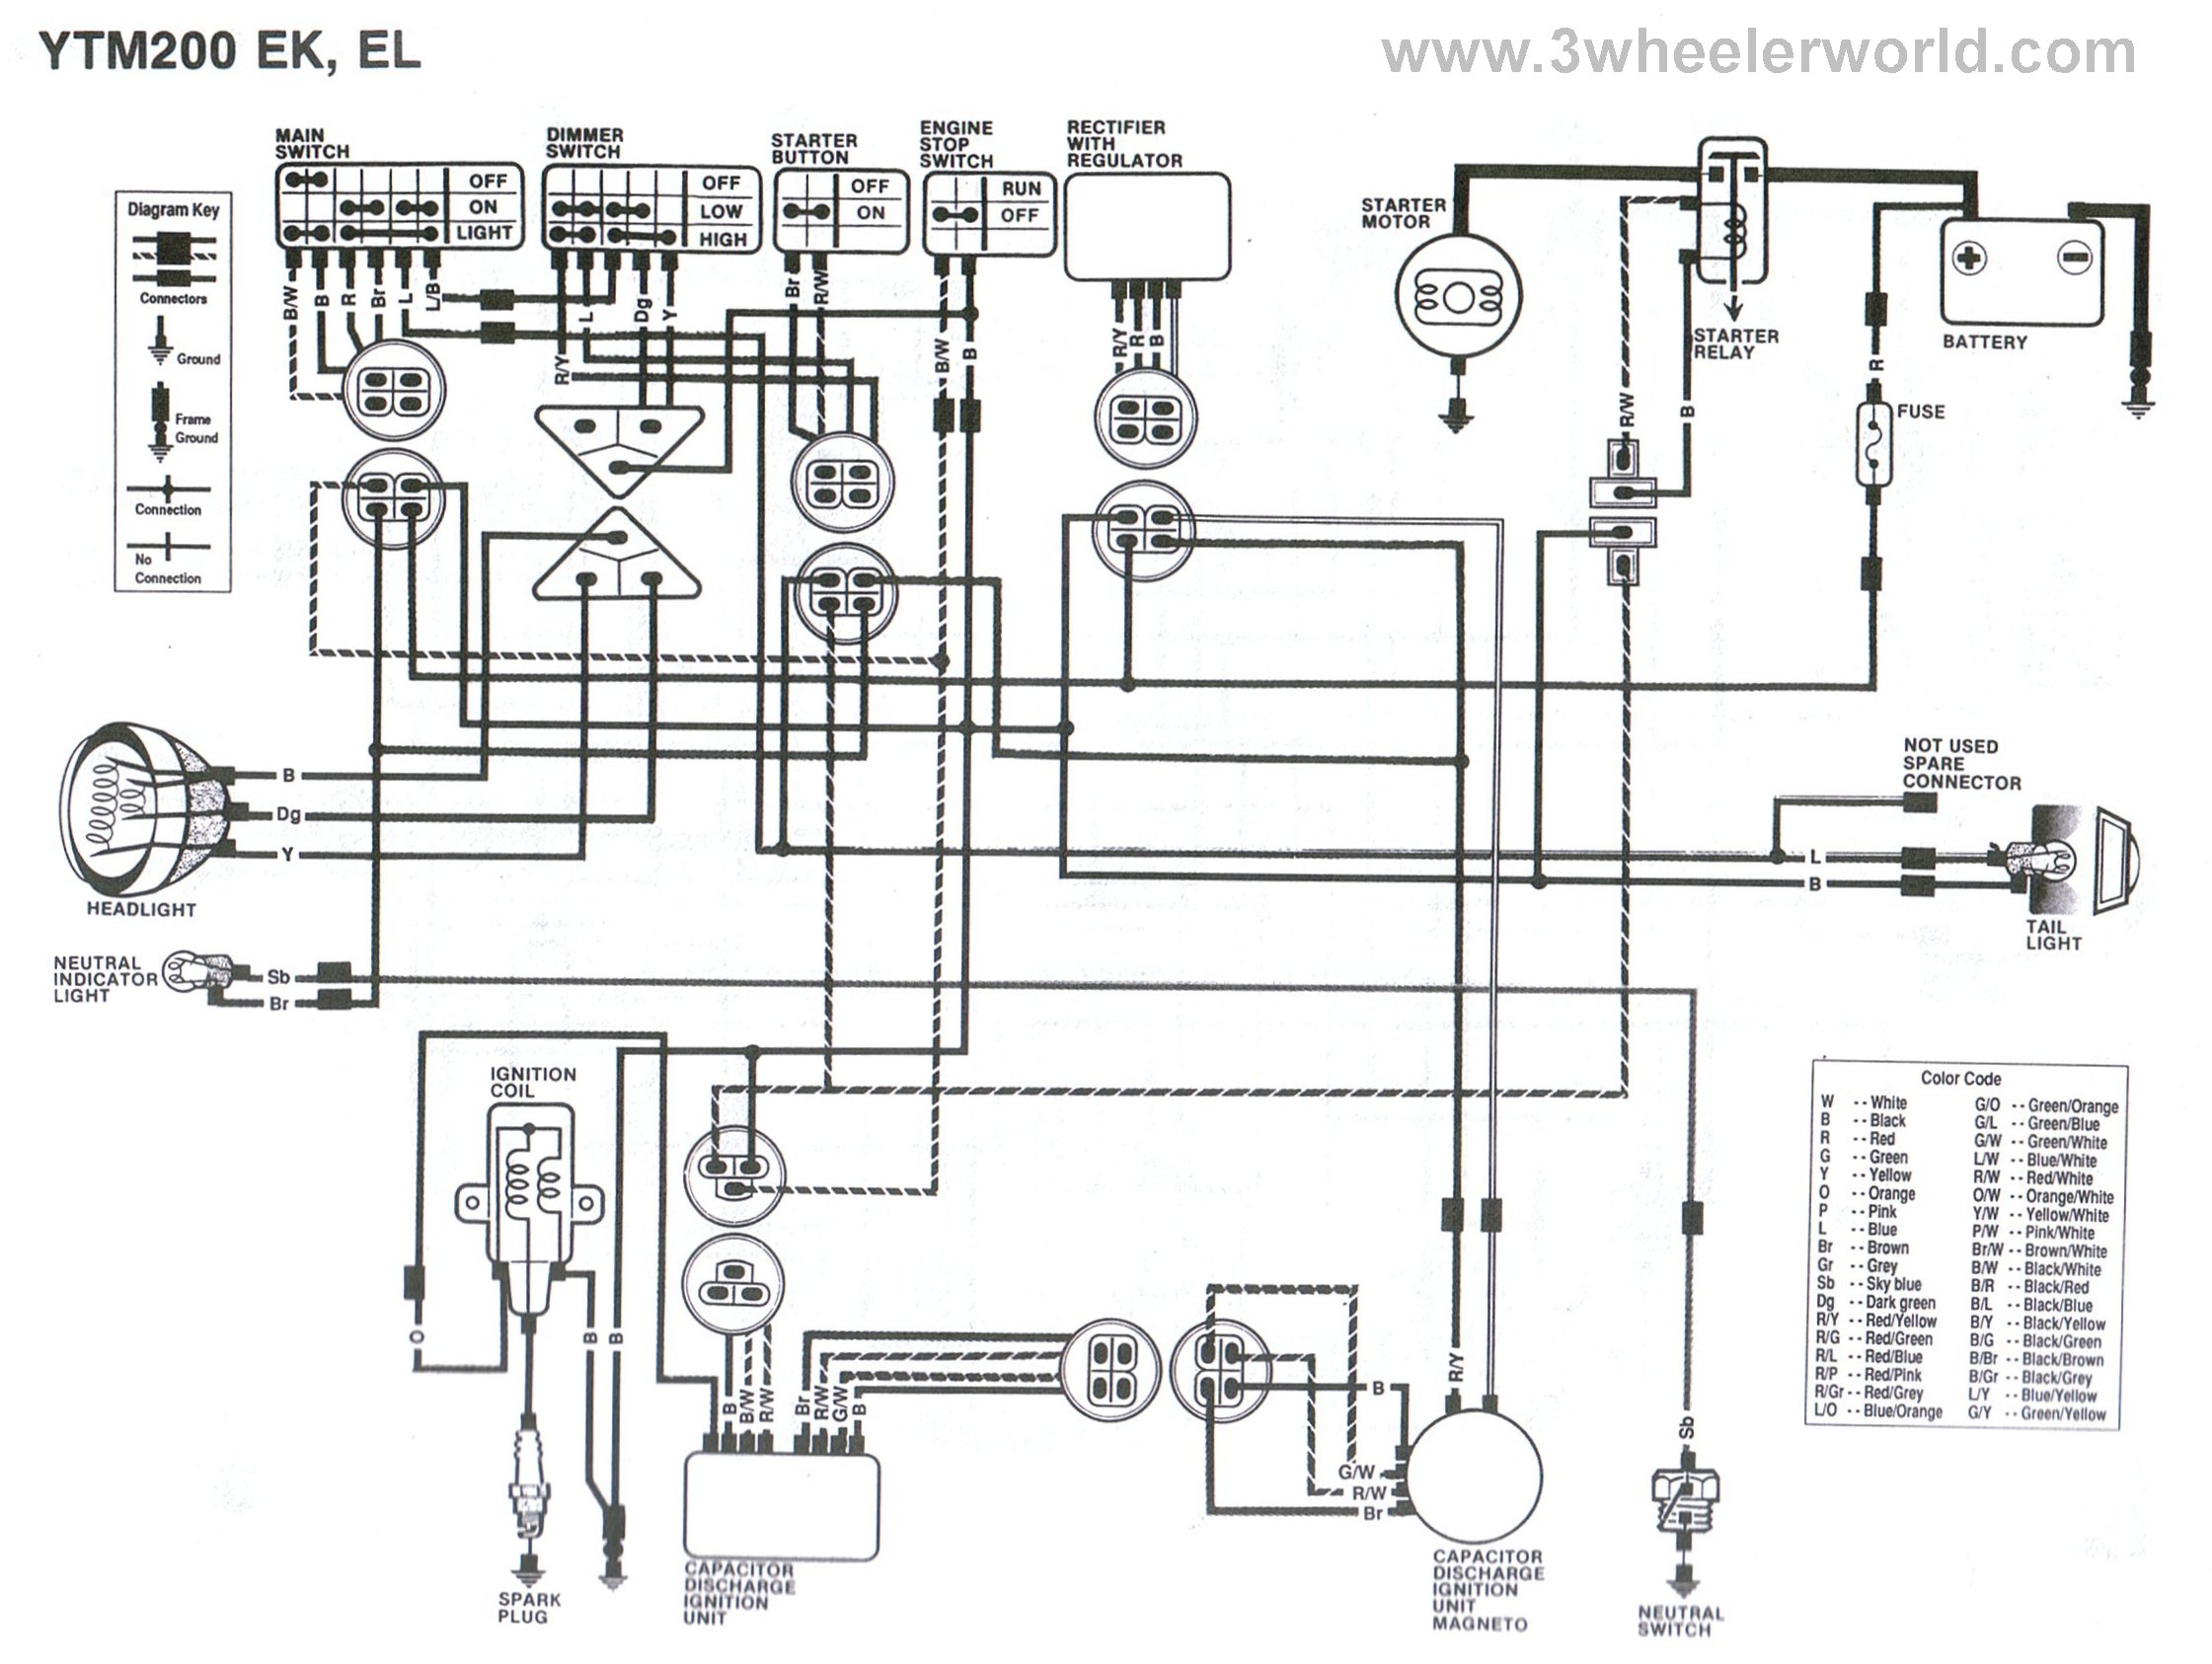 outboard starter wiring diagram with Wiringyamaha on 20876 Mercruiser Wiring Diagram Source besides 1dab2 Starter Location 2000 Chevy Blazer further 53396 Hello 2007 Mercury 75hp Stroke Outboard Will in addition 4yfju Just Bought Mercruiser 4 3 Alpha Boat We Problem likewise 1965 Ford Truck Electrical Wiring.